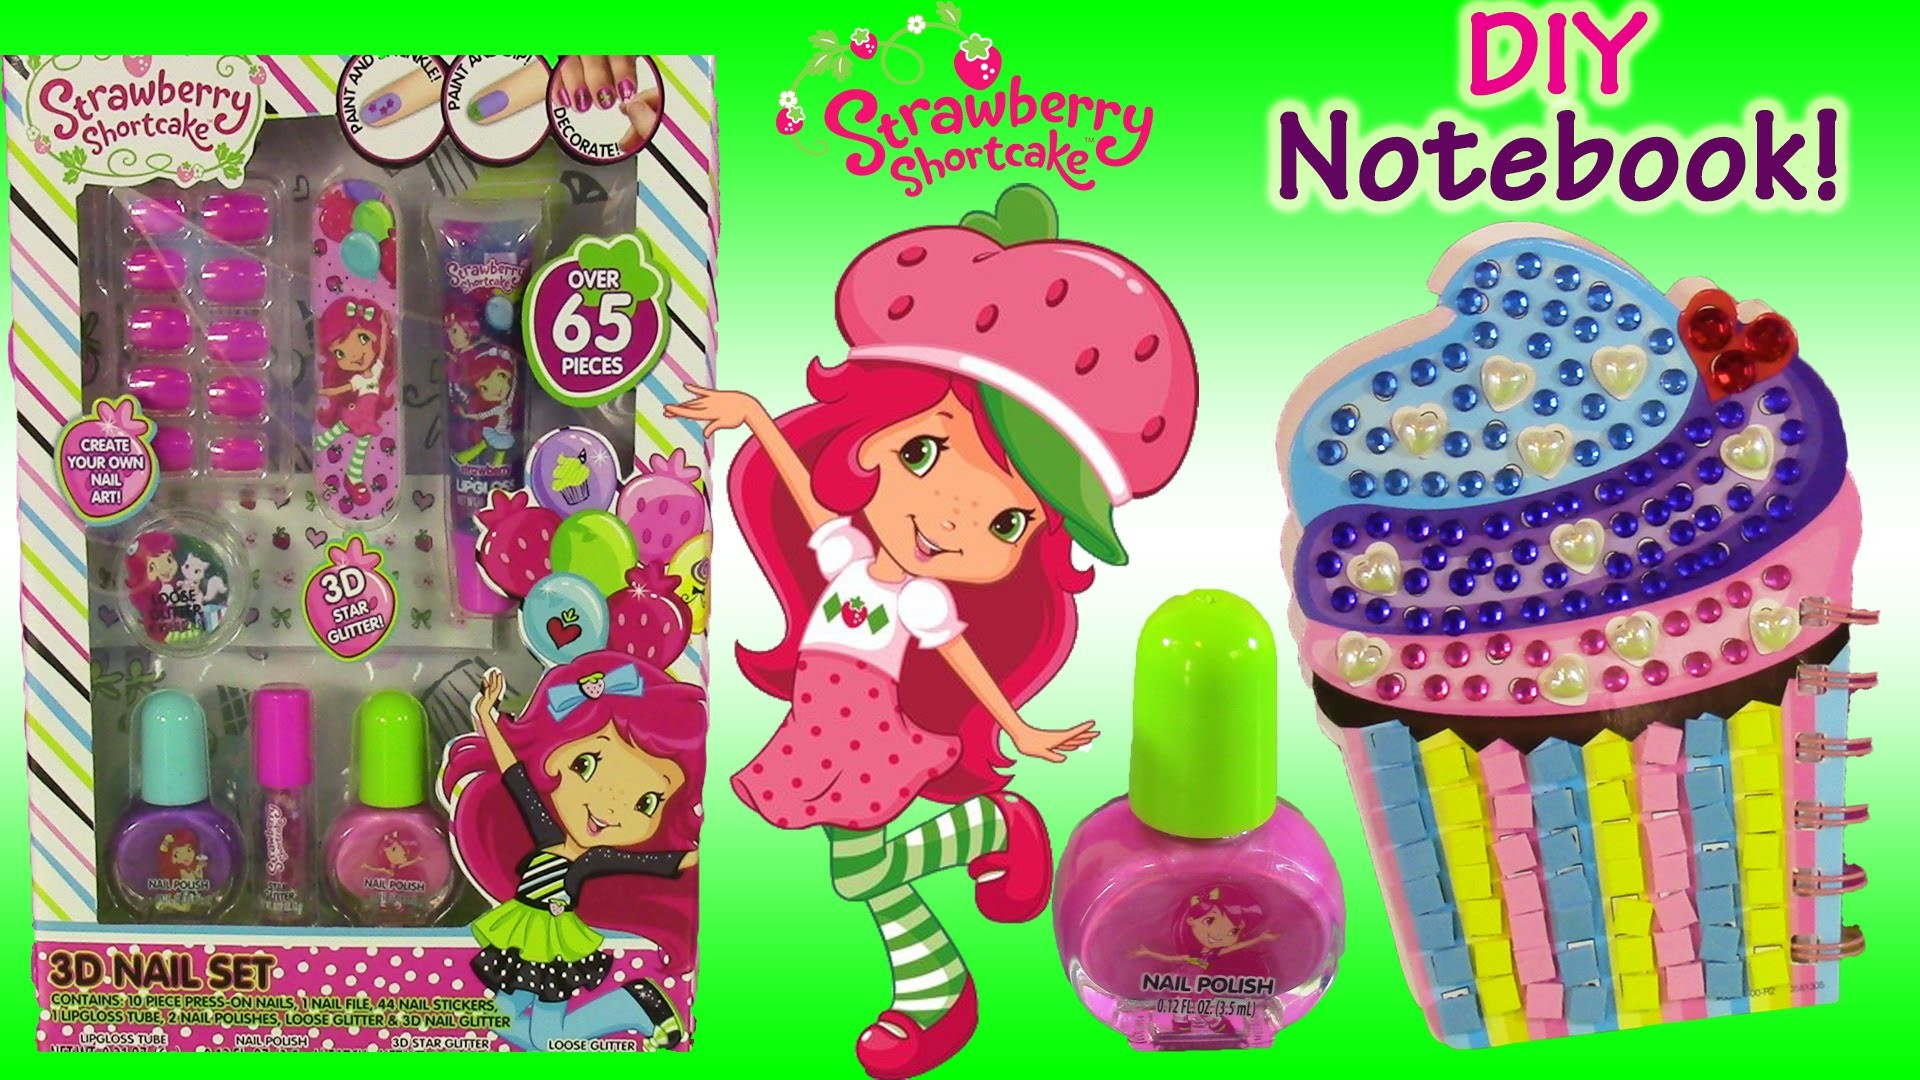 Strawberry Shortcake 3D Nail Set! Nail Polish Lip Gloss! DIY Cupcake Stick 'N Style Book! FUN